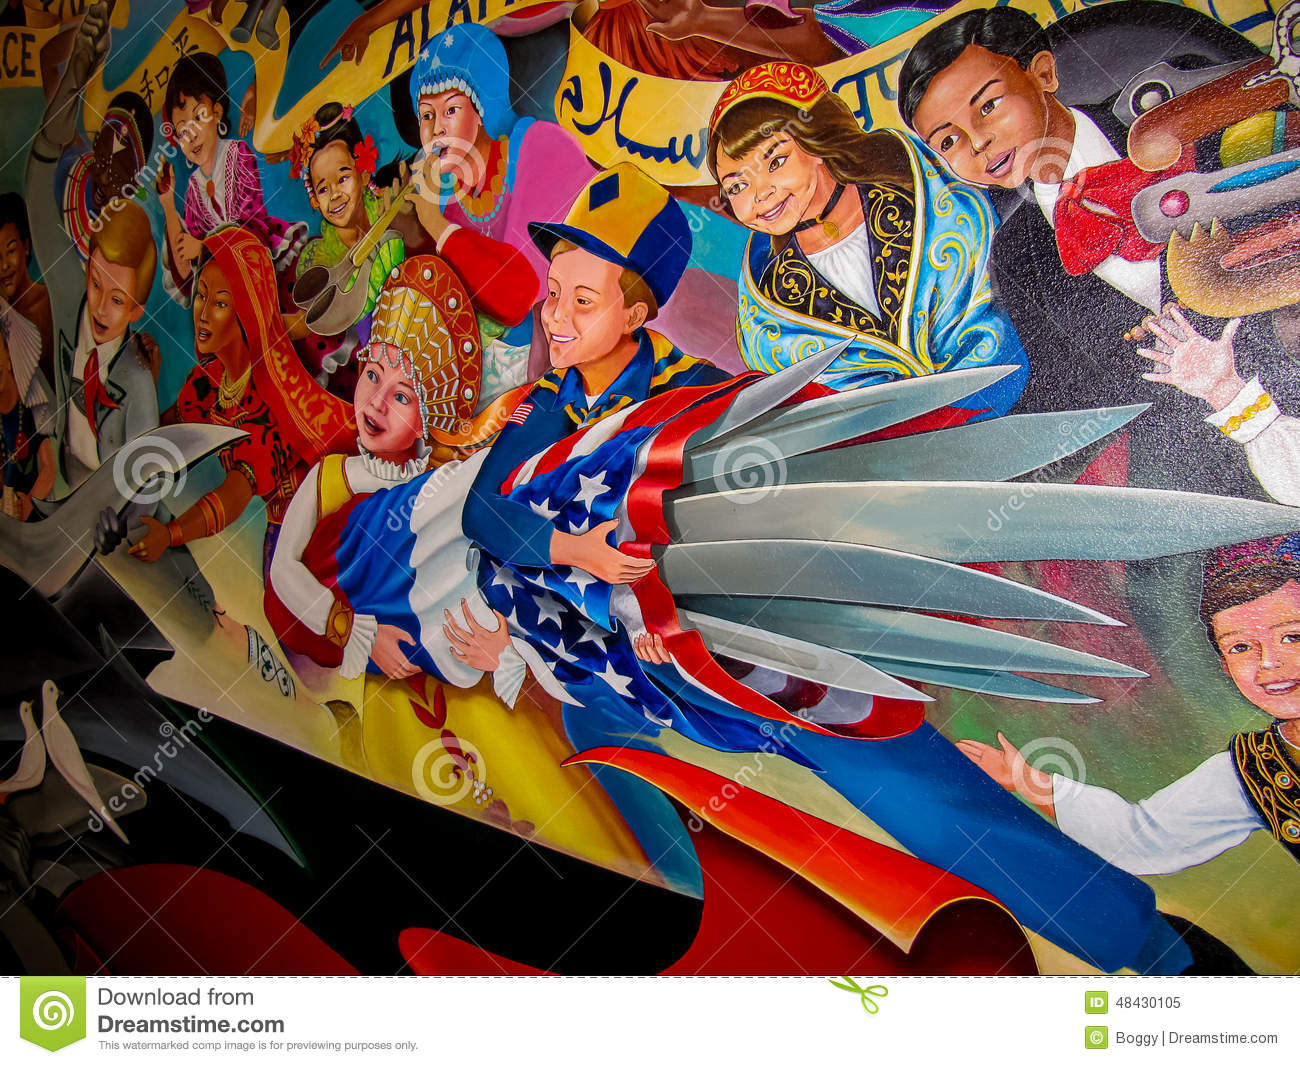 Denver Airport Wall Murals Children Of The World Dream Of Peace Editorial Image